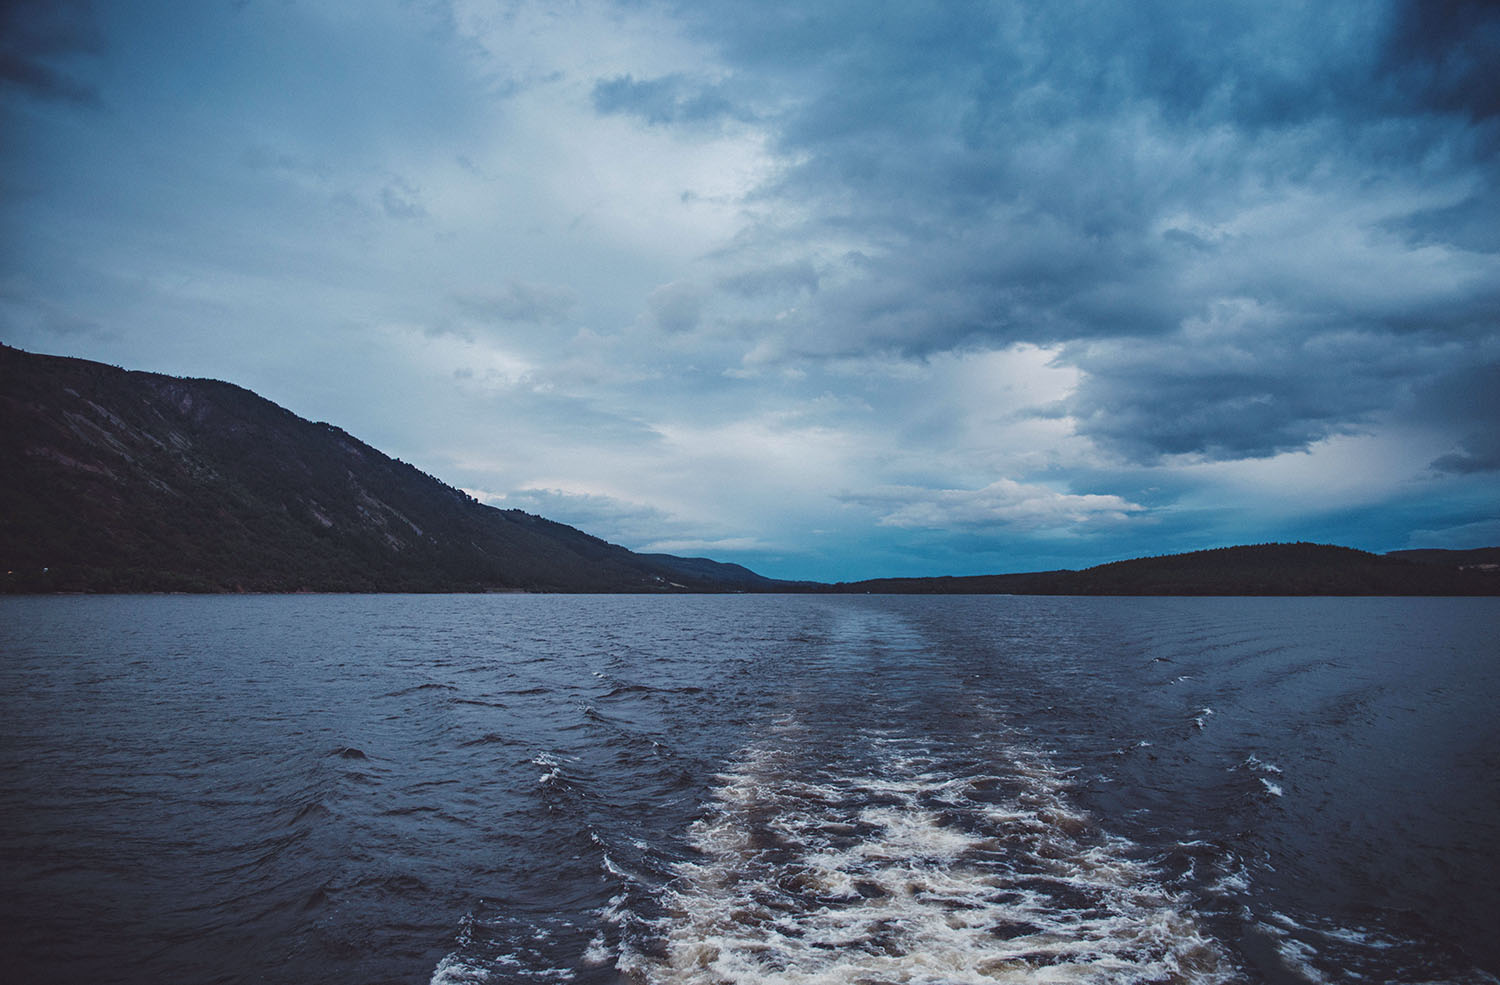 View from a boat of Loch Ness in Scotland